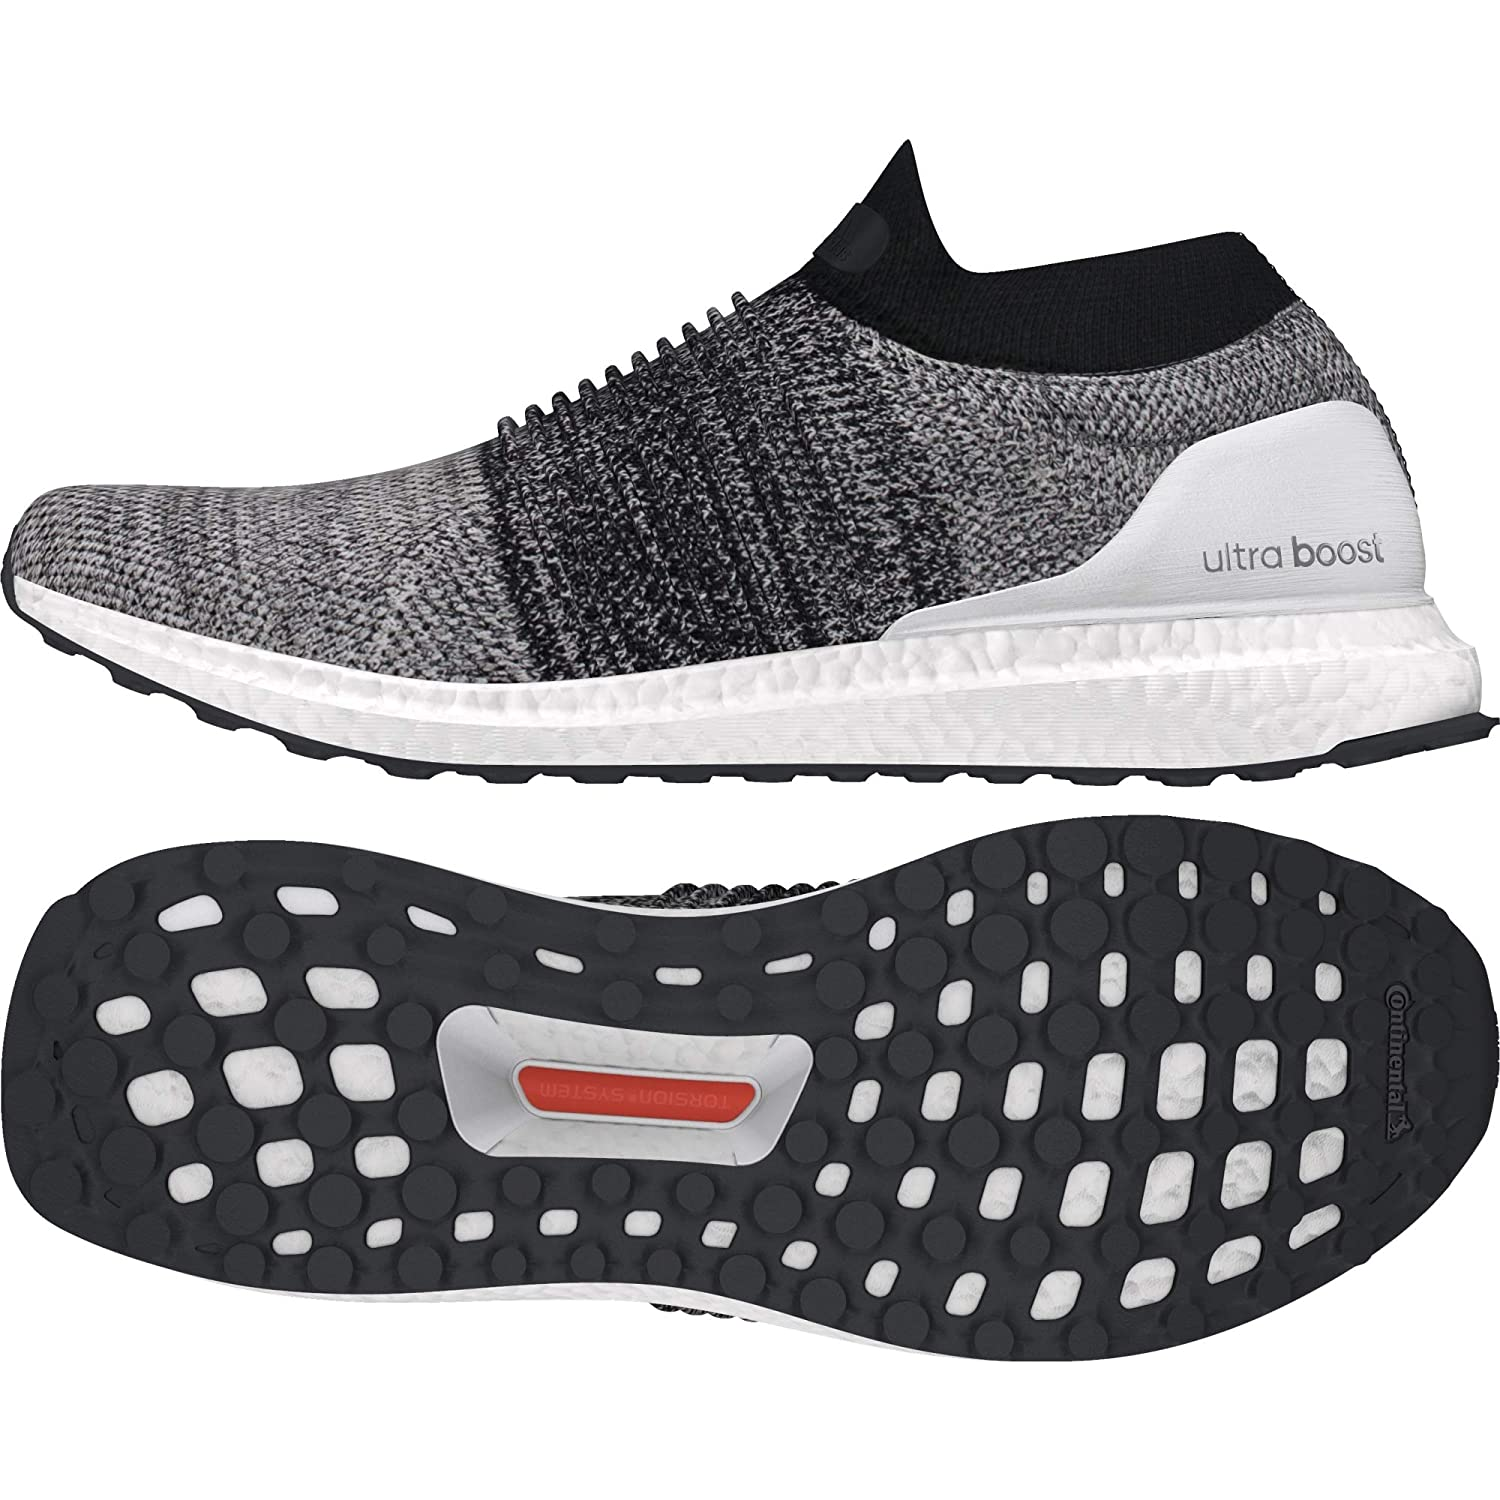 11d3a41eb5b70 Adidas Men s Ultraboost Laceless Ftwwht Ftwwht Cblack Running Shoes - 8  UK India (42 1 9 EU)(BB6141)  Buy Online at Low Prices in India - Amazon.in